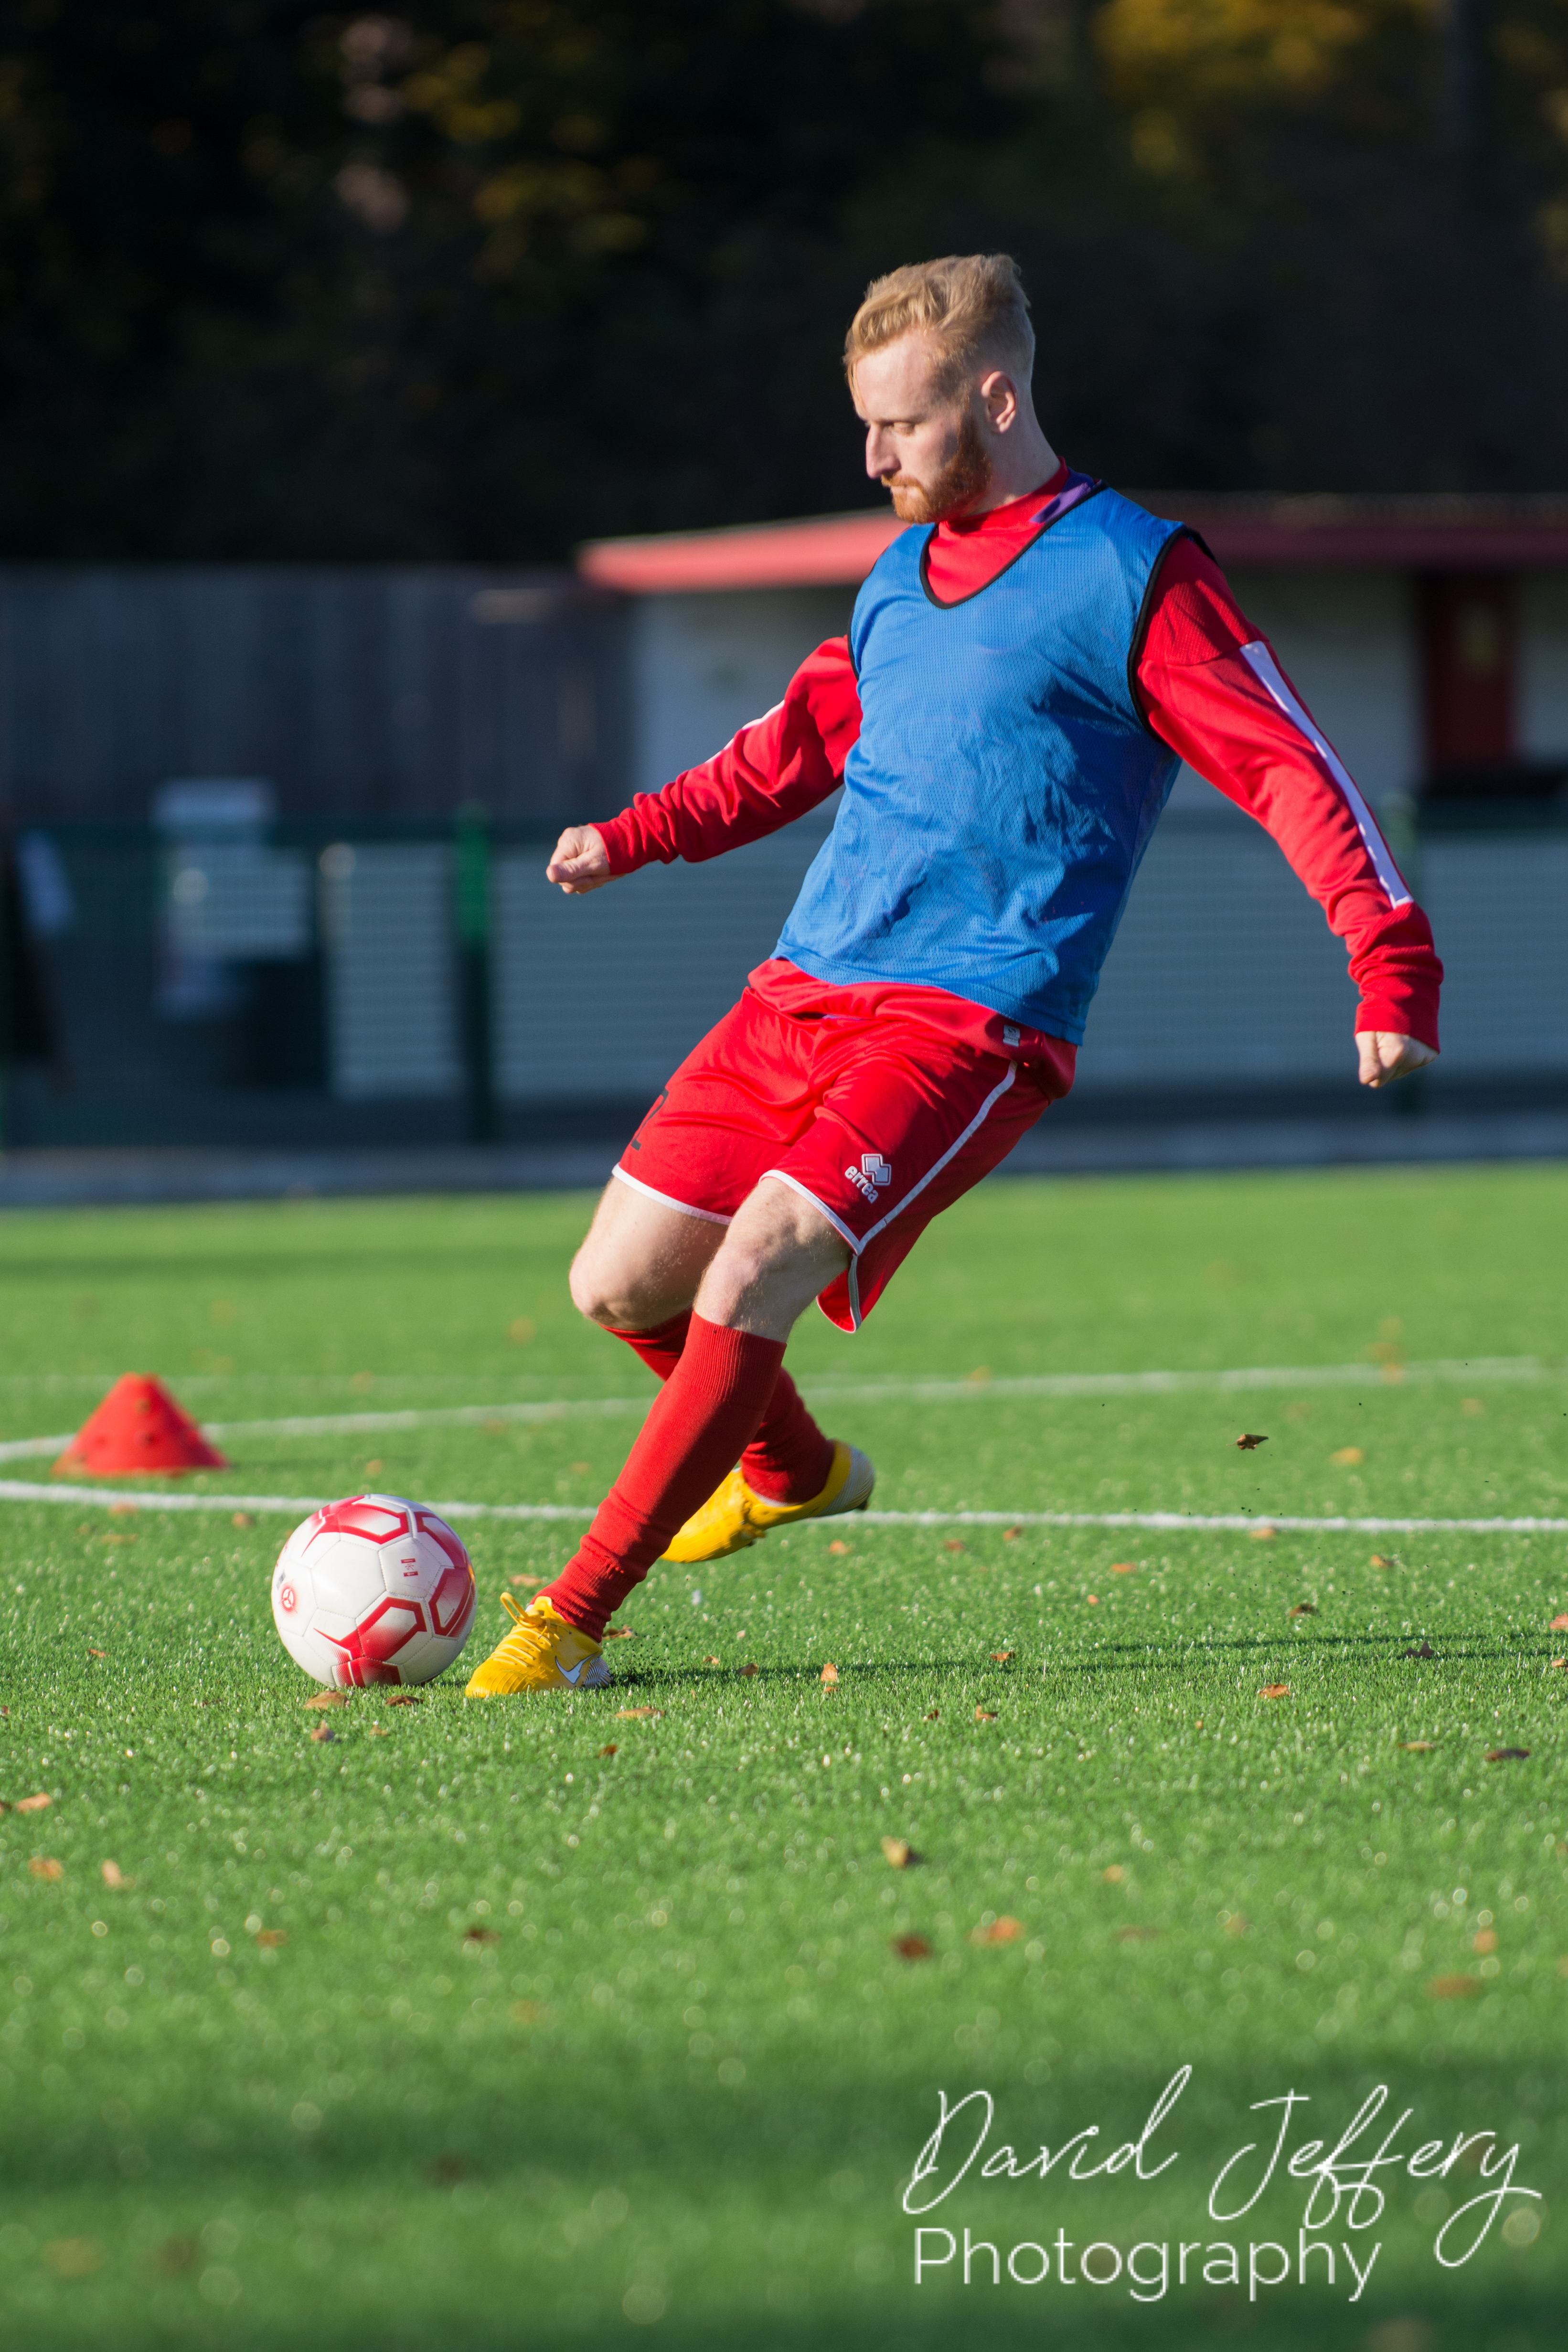 DAVID_JEFFERY Steyning Town vs Banstead